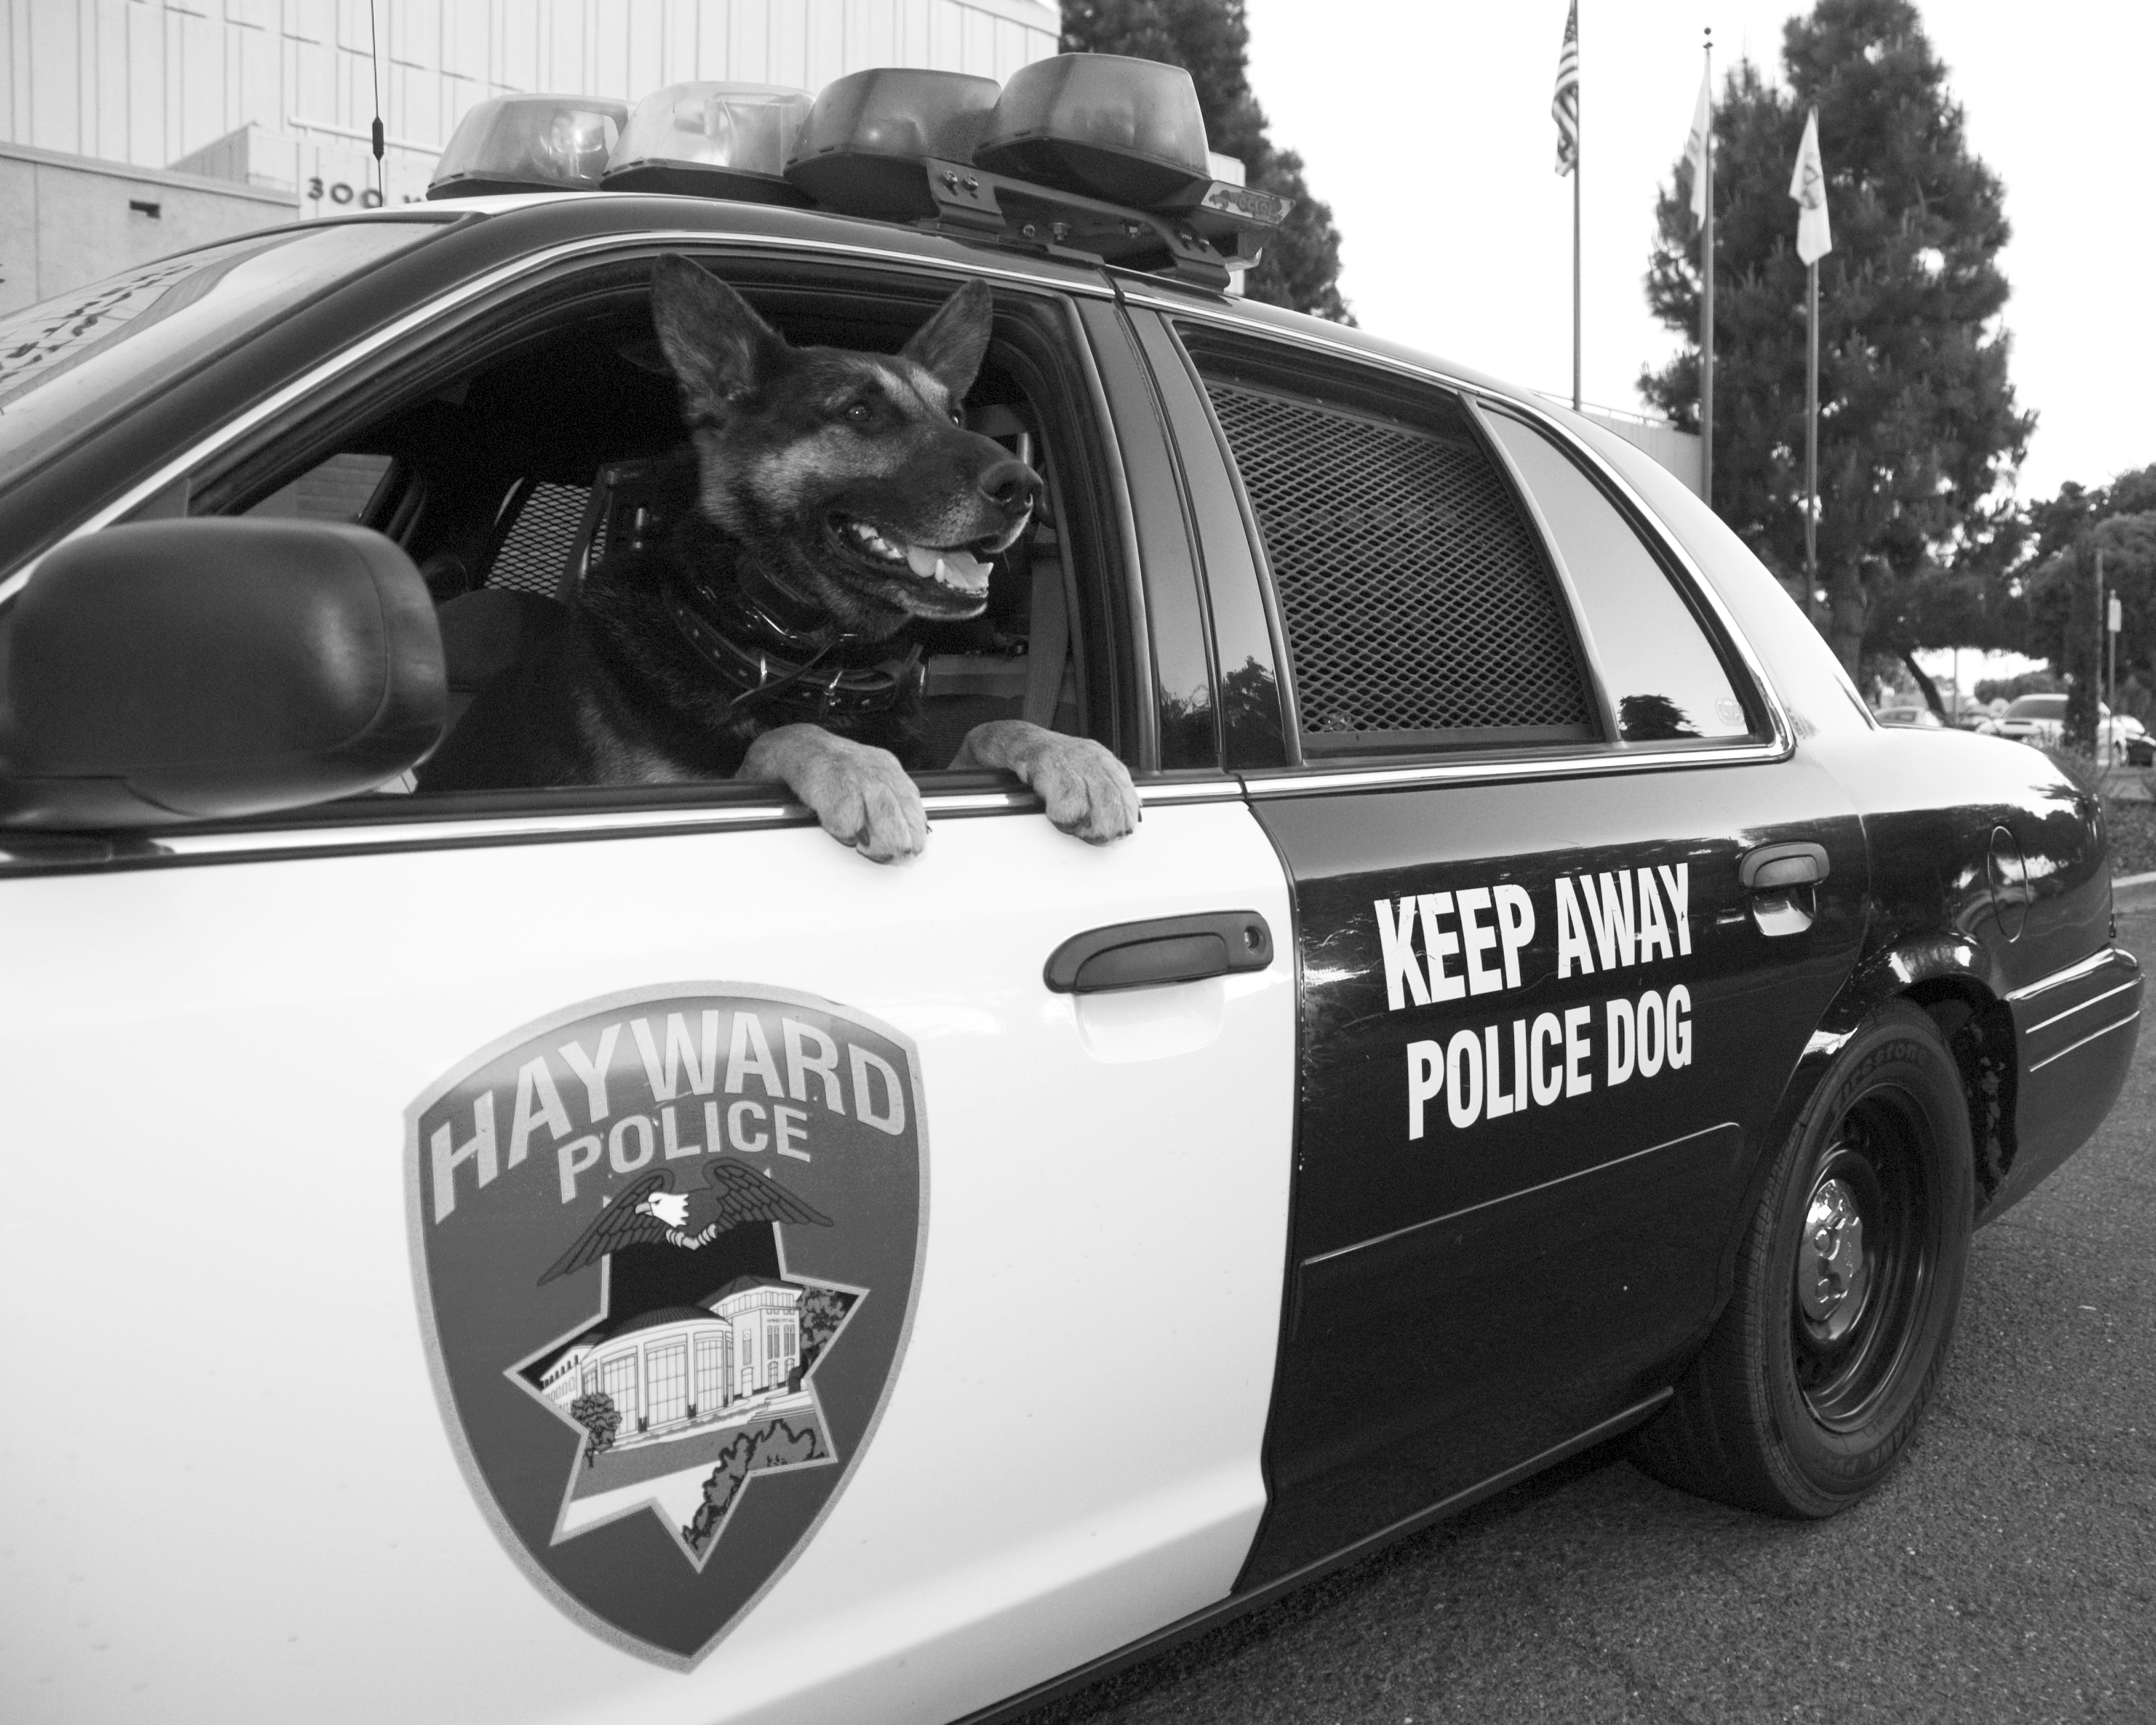 Special Operations Division | City of Hayward - Official website